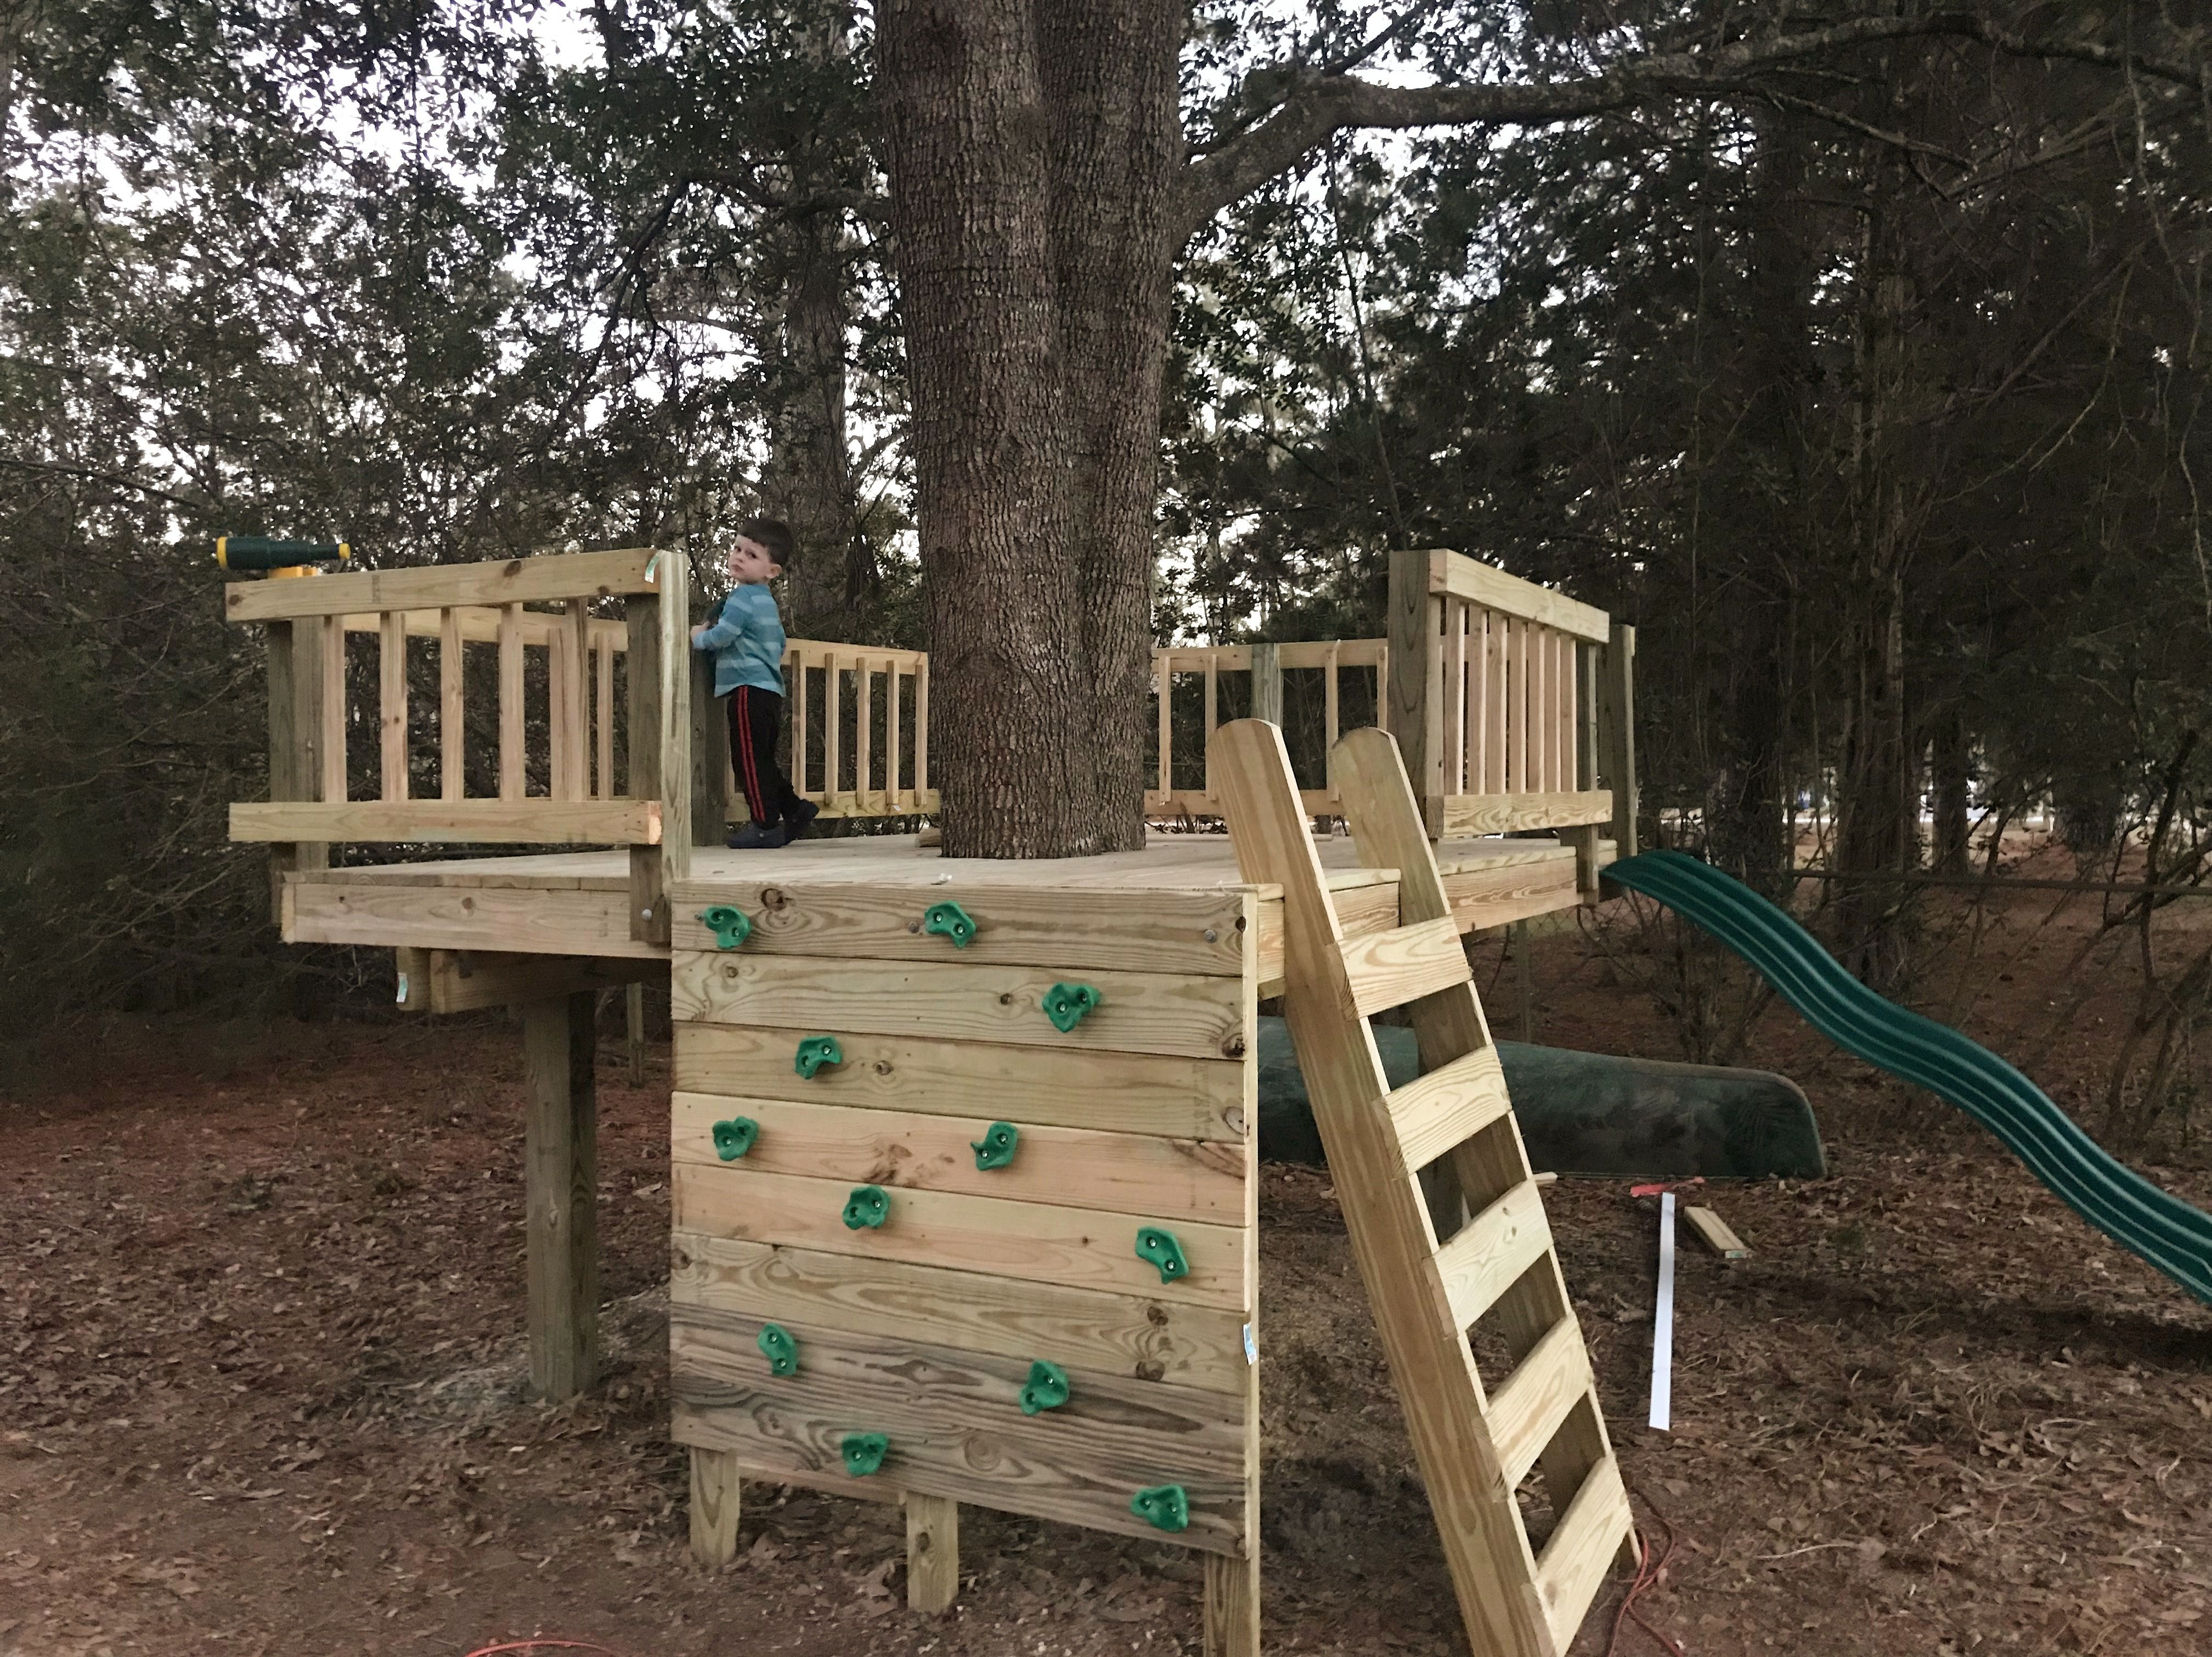 Swell Diy Tree Fort Kids Rock Wall Tree House Railing Play Set Download Free Architecture Designs Scobabritishbridgeorg